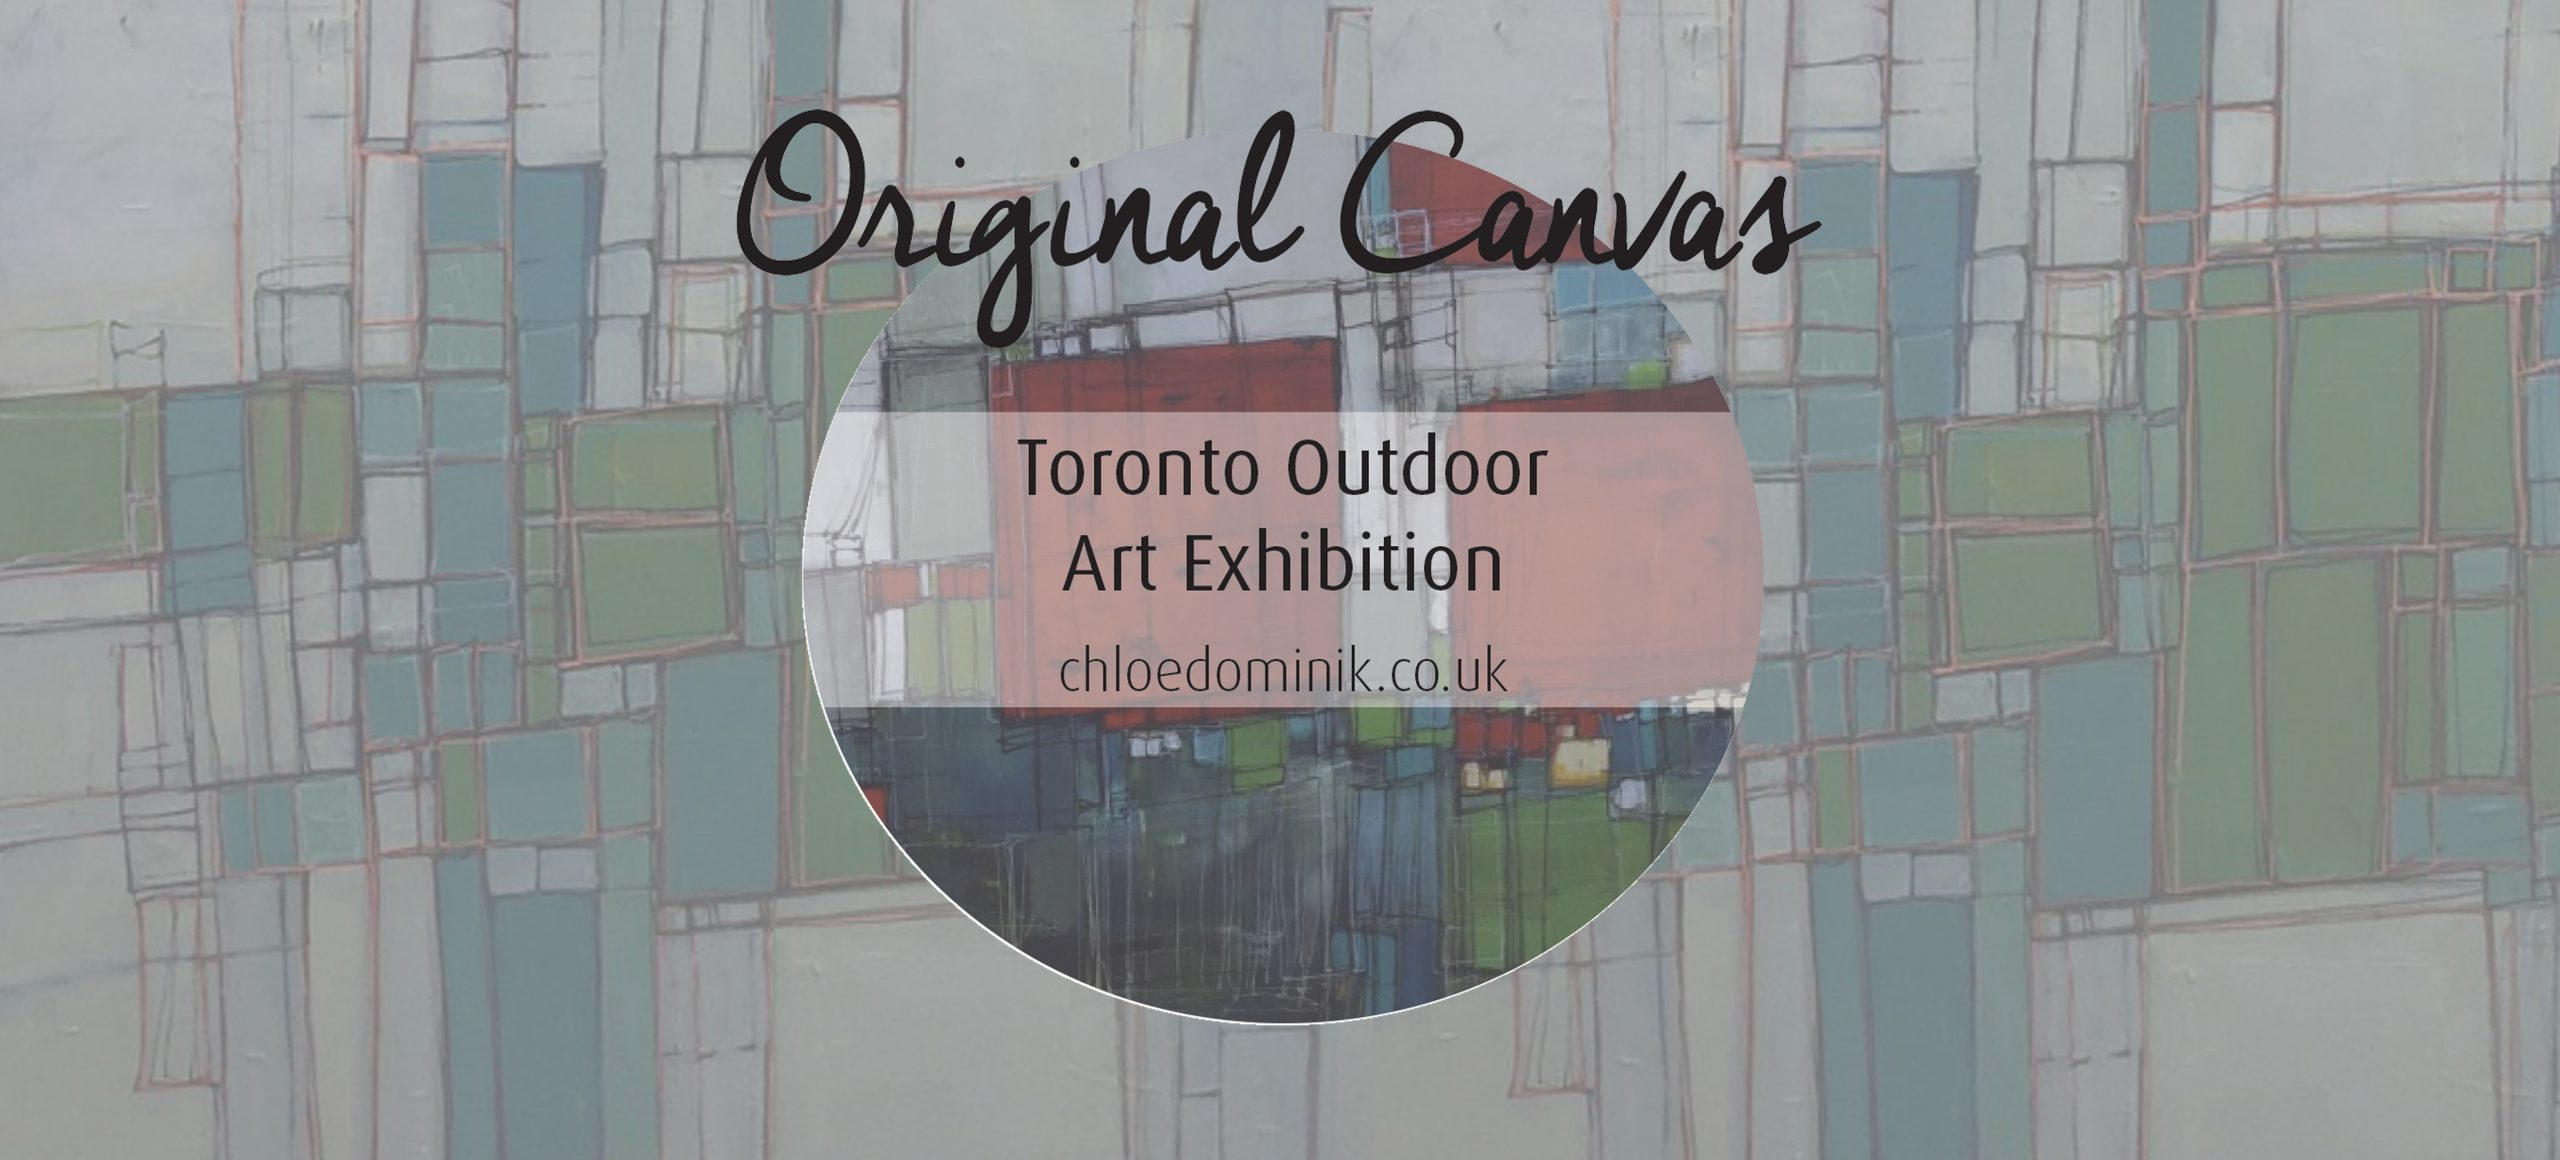 Original Canvas: Toronto Outdoor Art Exhibition